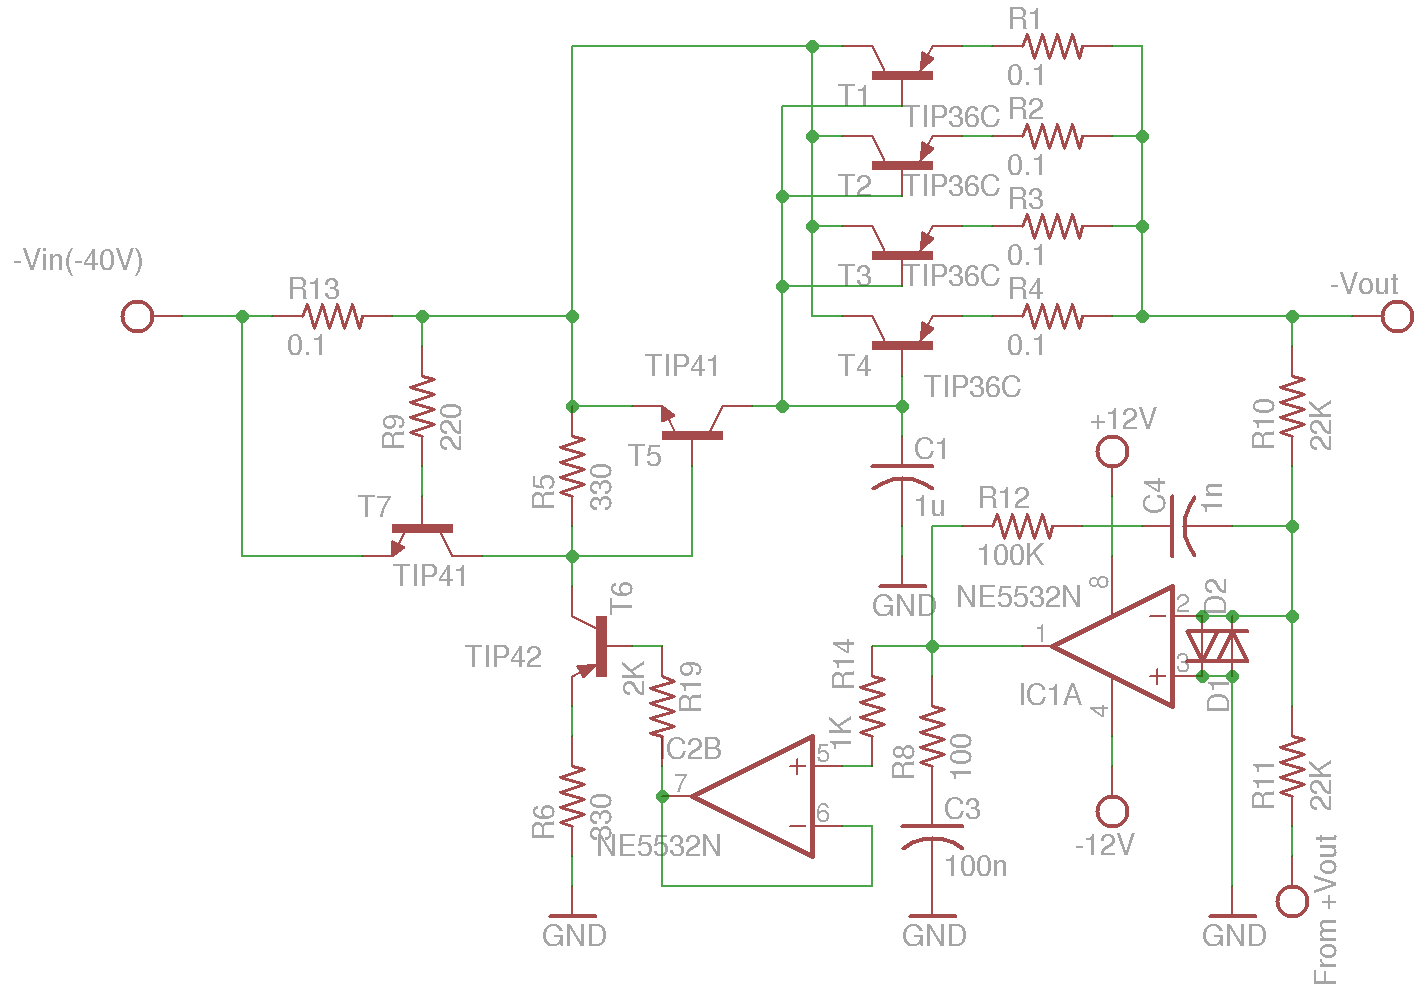 Electronique realisations interfaces logique 001 likewise How To Drive A Mosfet With An Optocoupler also Relay Driver Circuit Using Uln2003 in addition Relazione Su Circuito Stabiliz35477 likewise Light Sensitive Switch. on current limiter with transistor